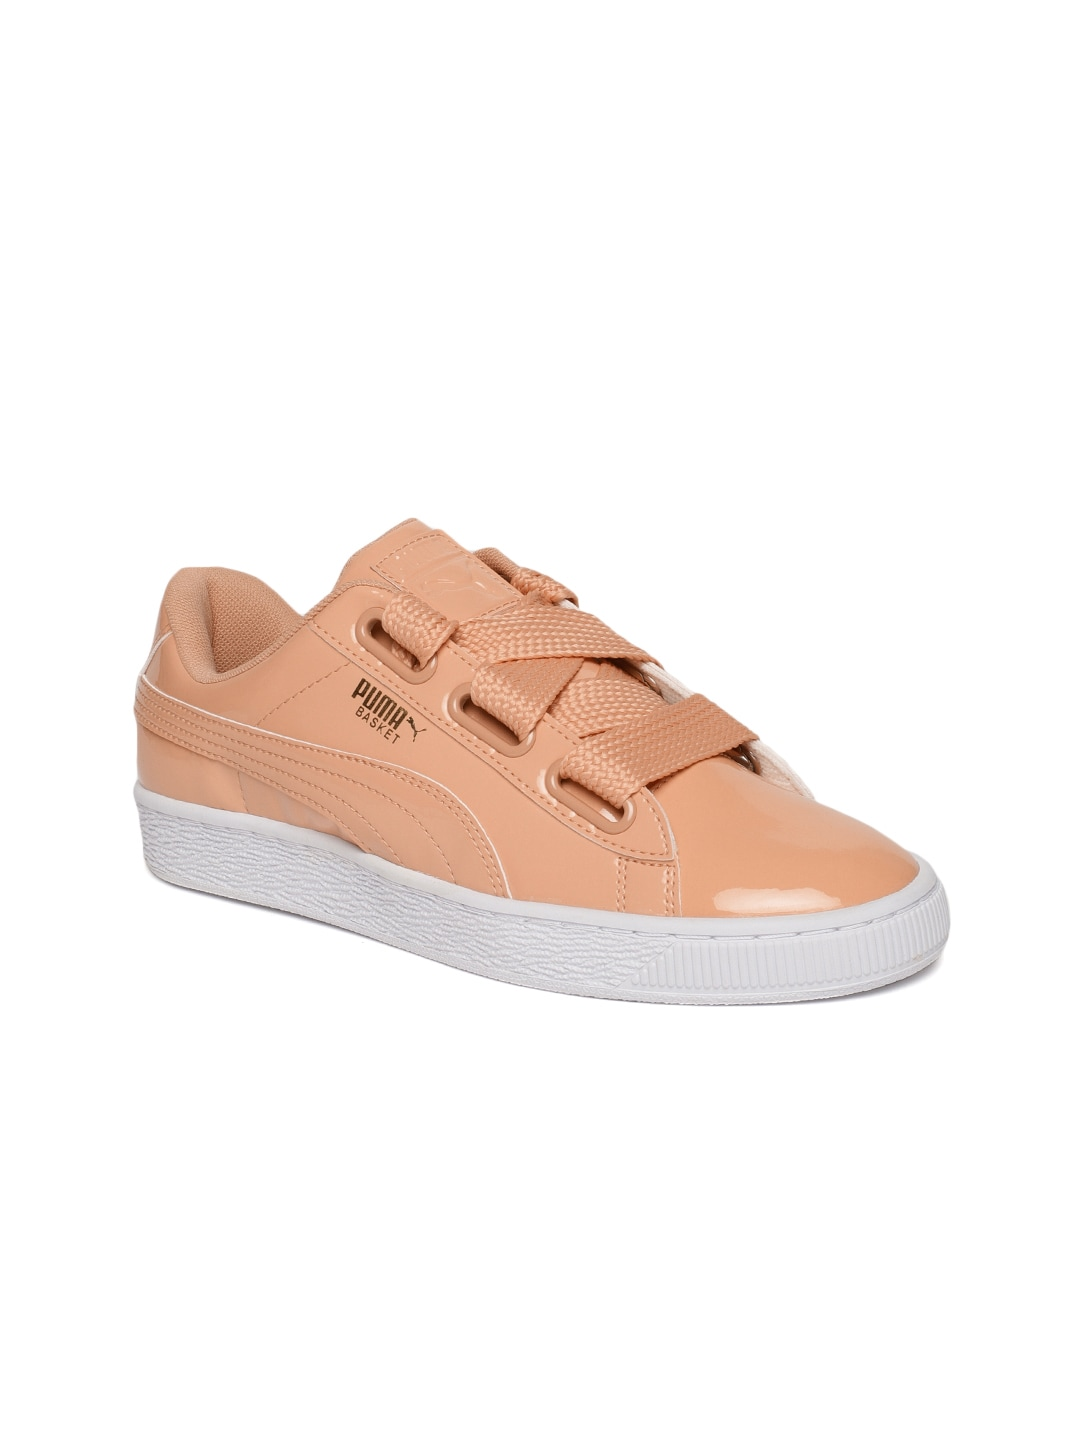 Puma Buy Online In Shoes Casual White India UMpqSzVG